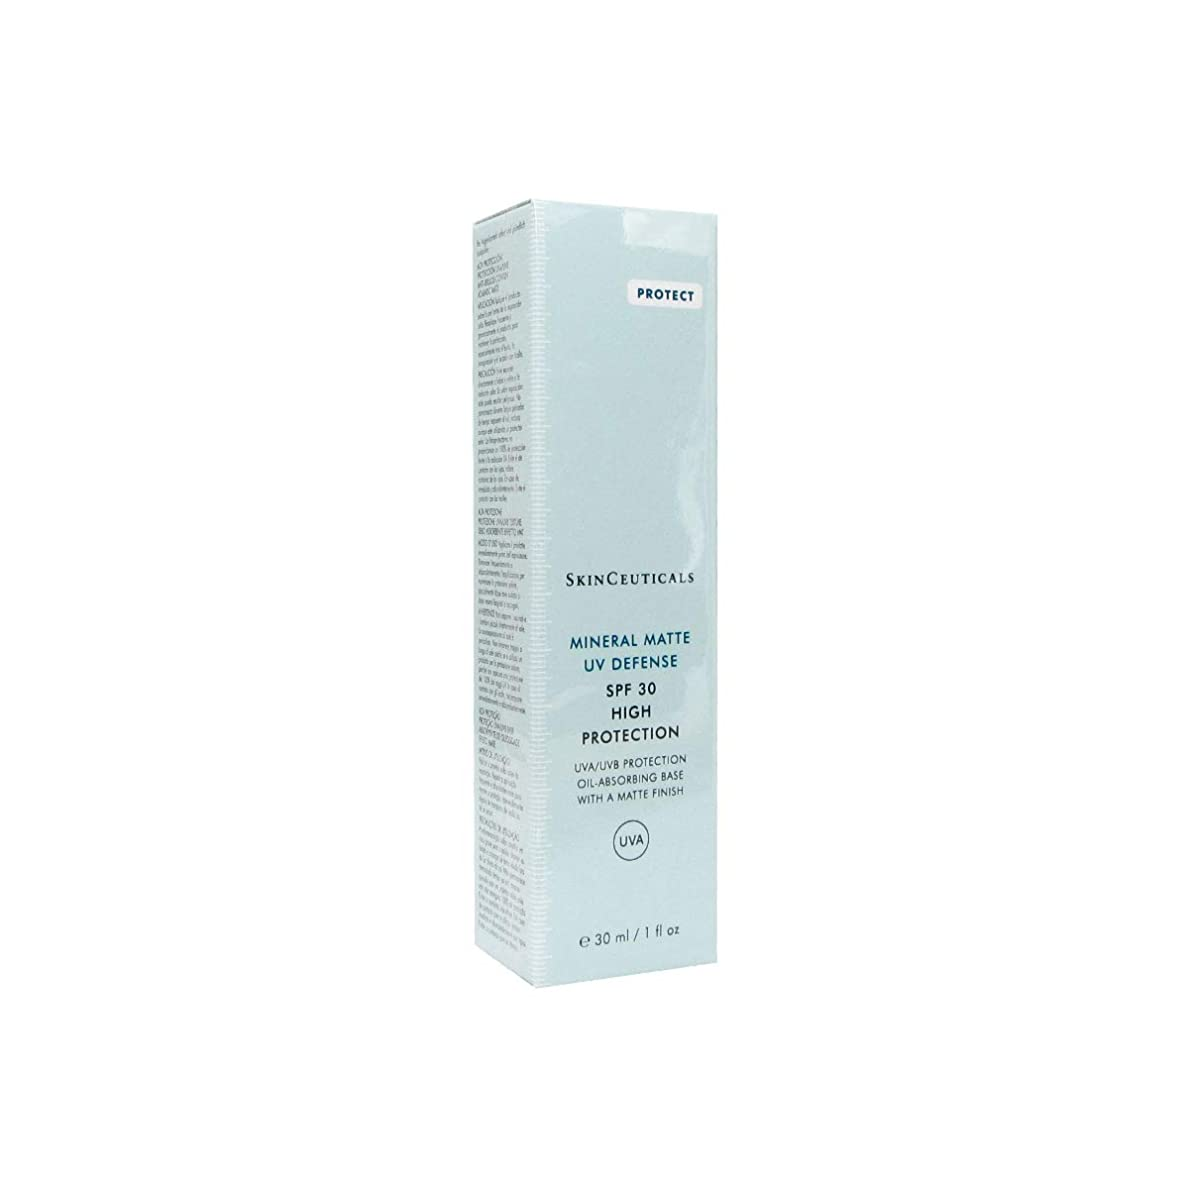 Skinceuticals Mineral Matte Uv Defense Spf30 30ml [並行輸入品]